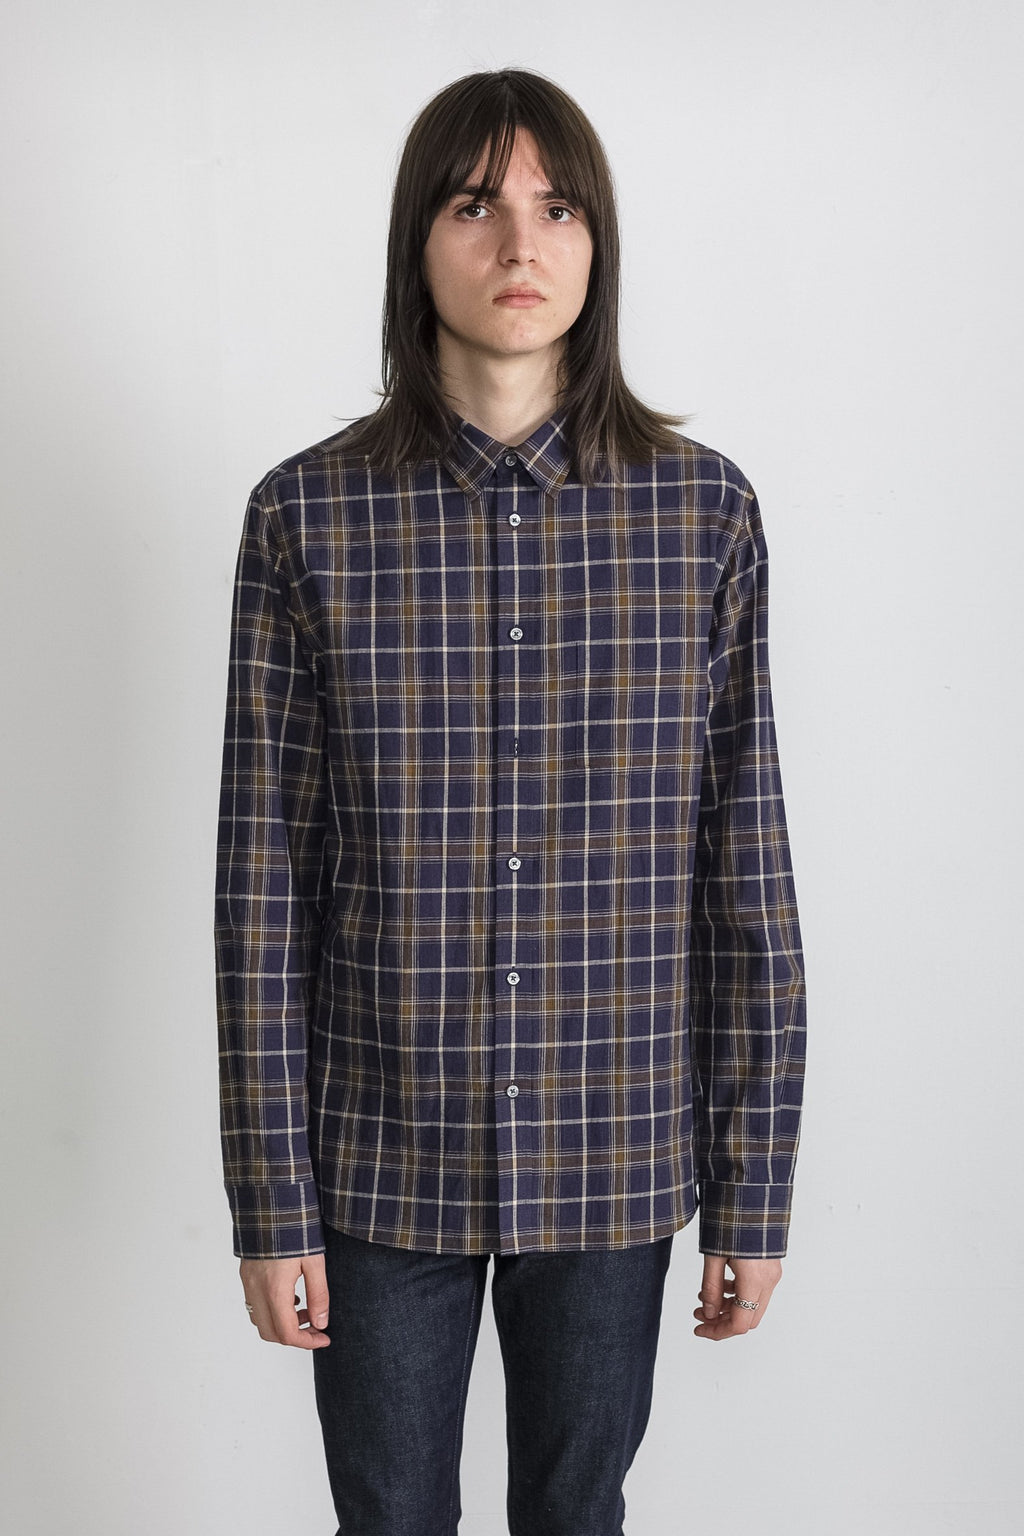 japanese-vintage-plaid-in-blue-and-brown 01